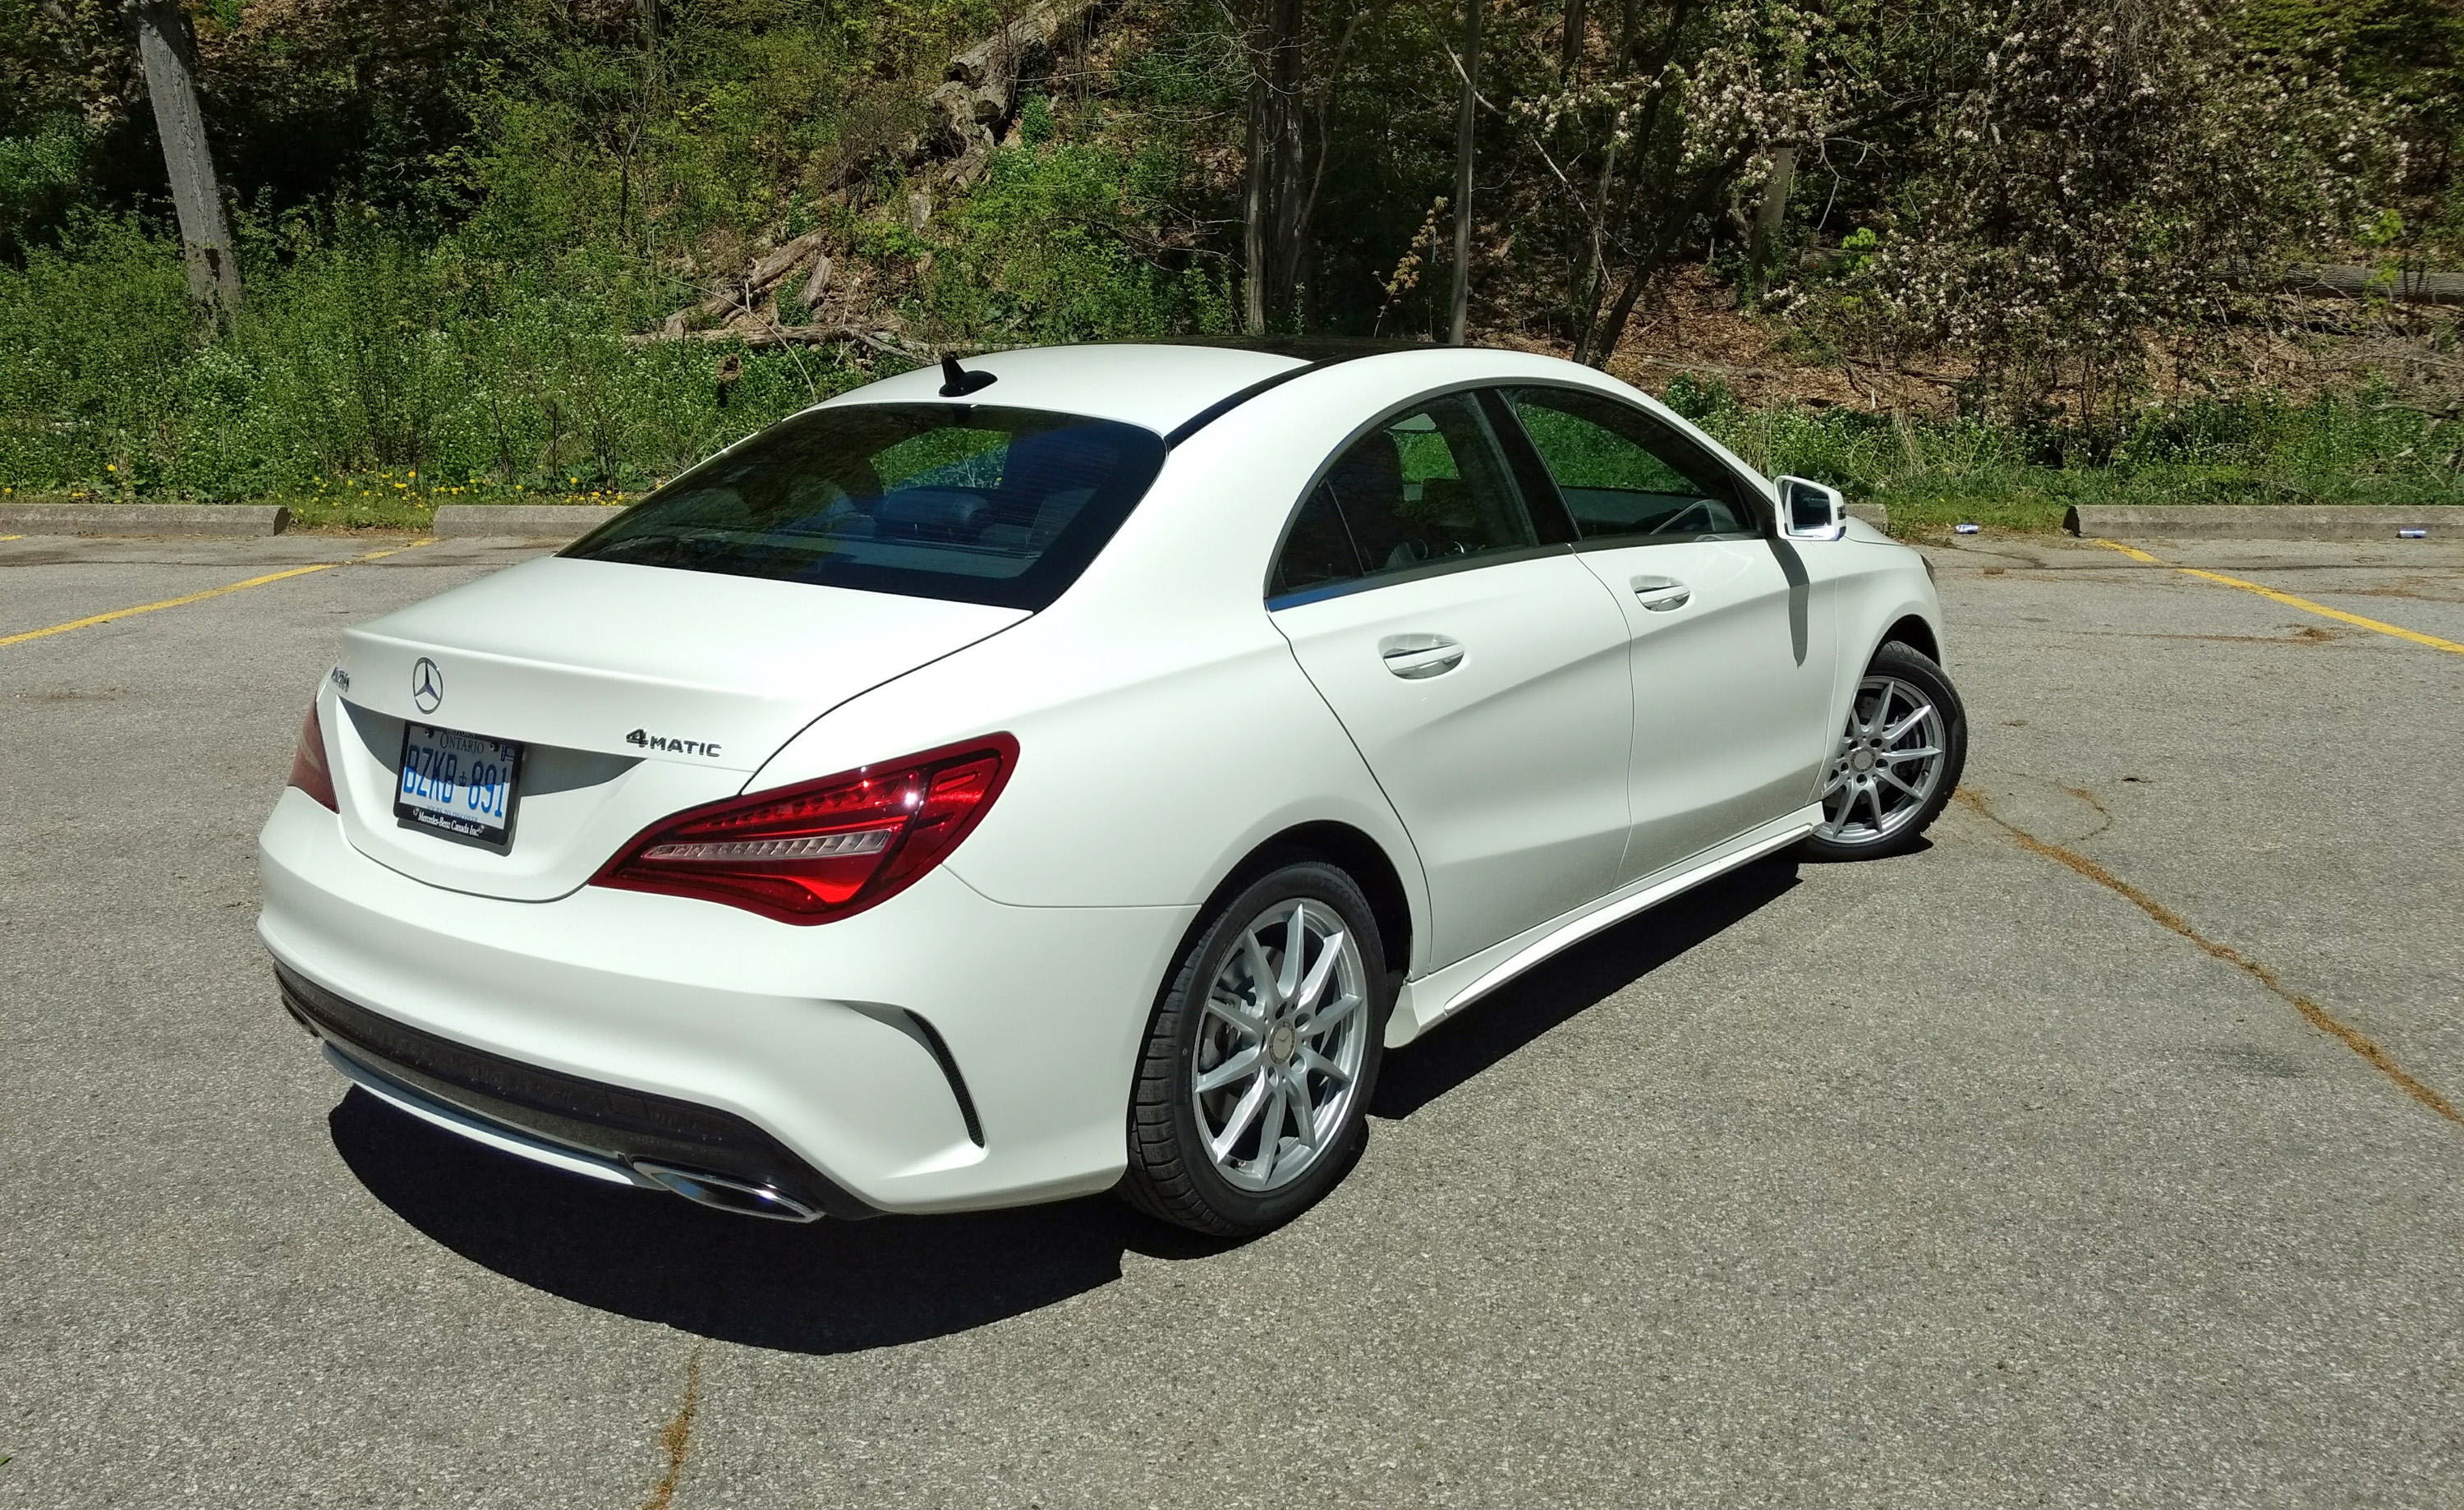 2017 Mercedes Cla 250 4matic Review Rear3q High